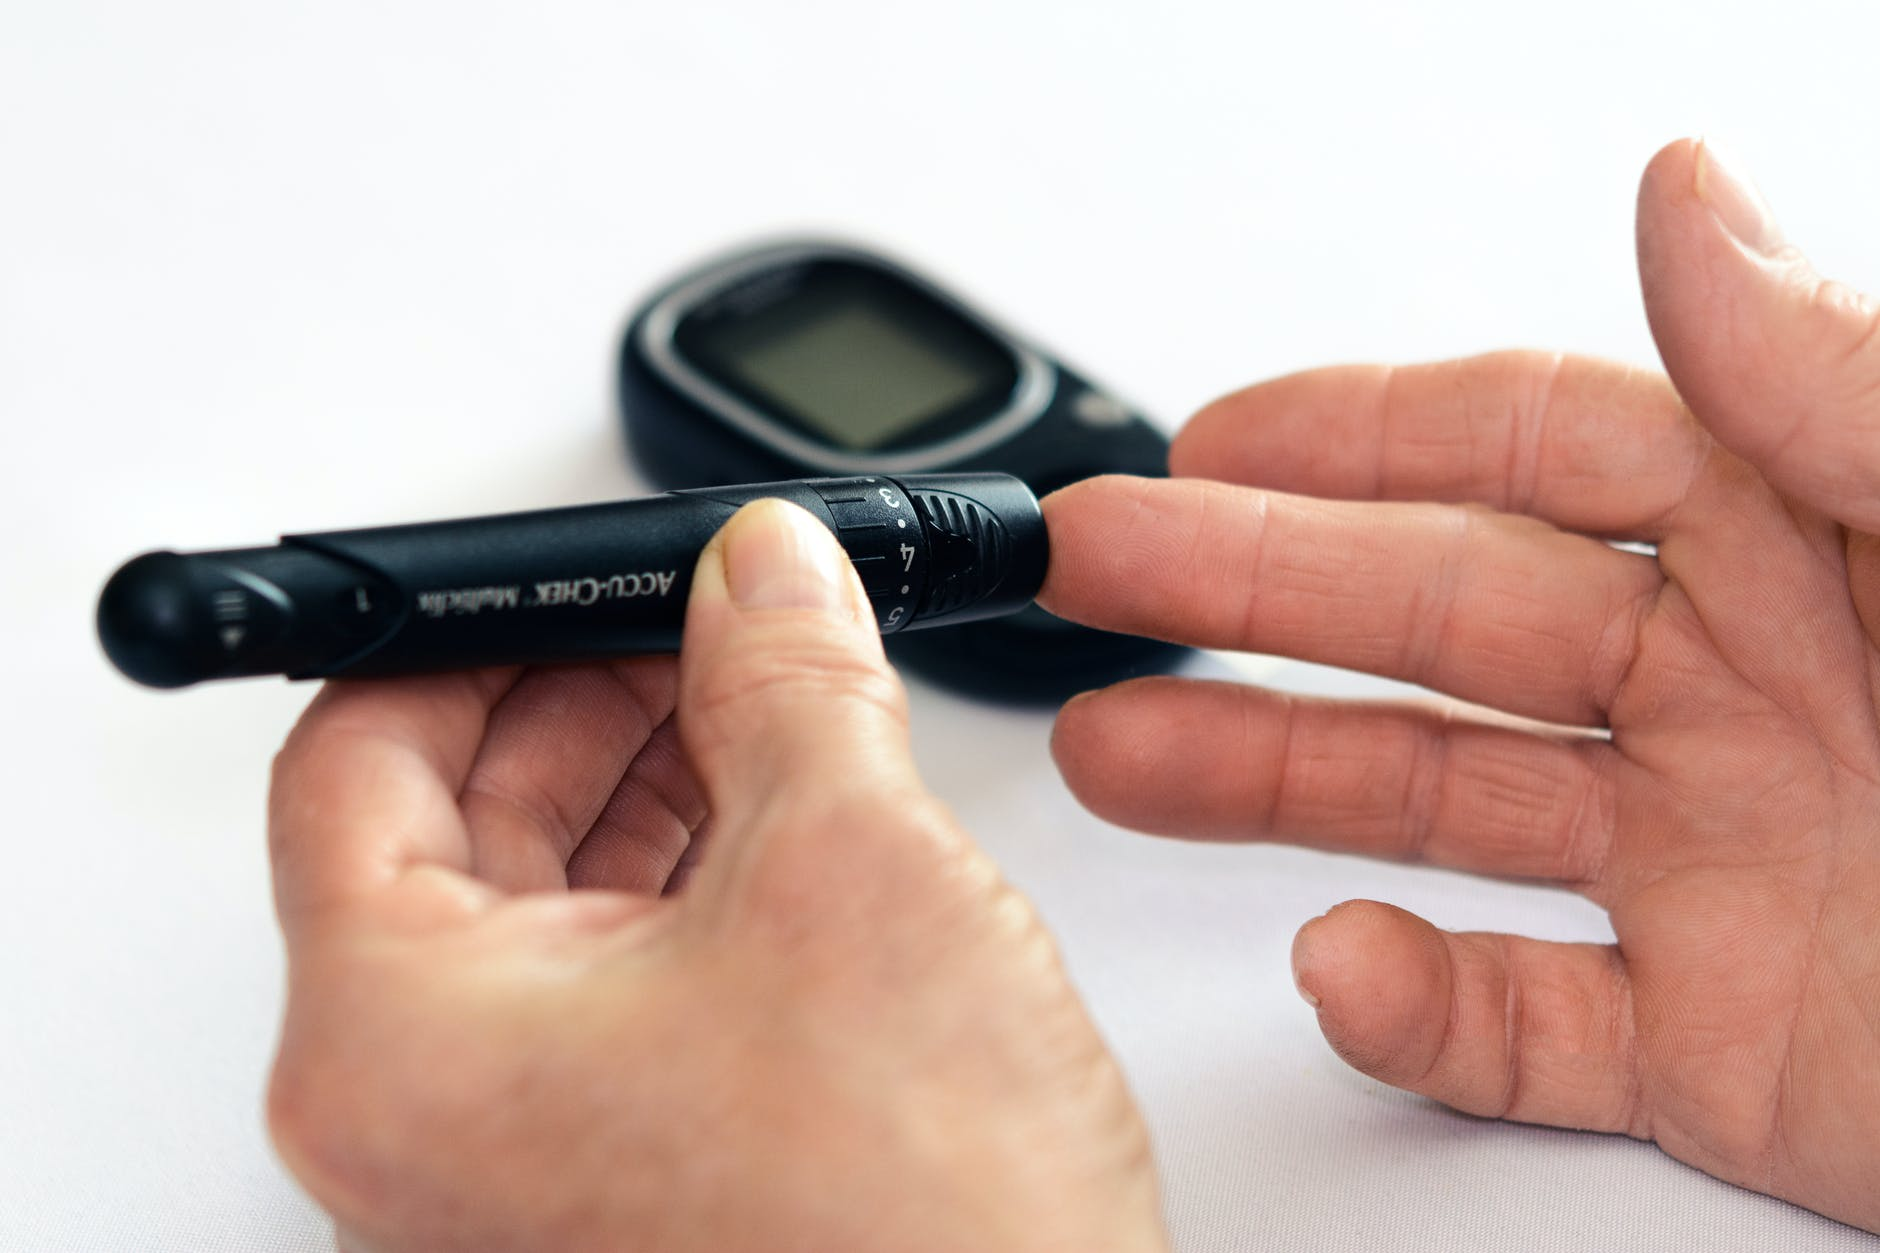 can you have hypoglycemia without diabetes?